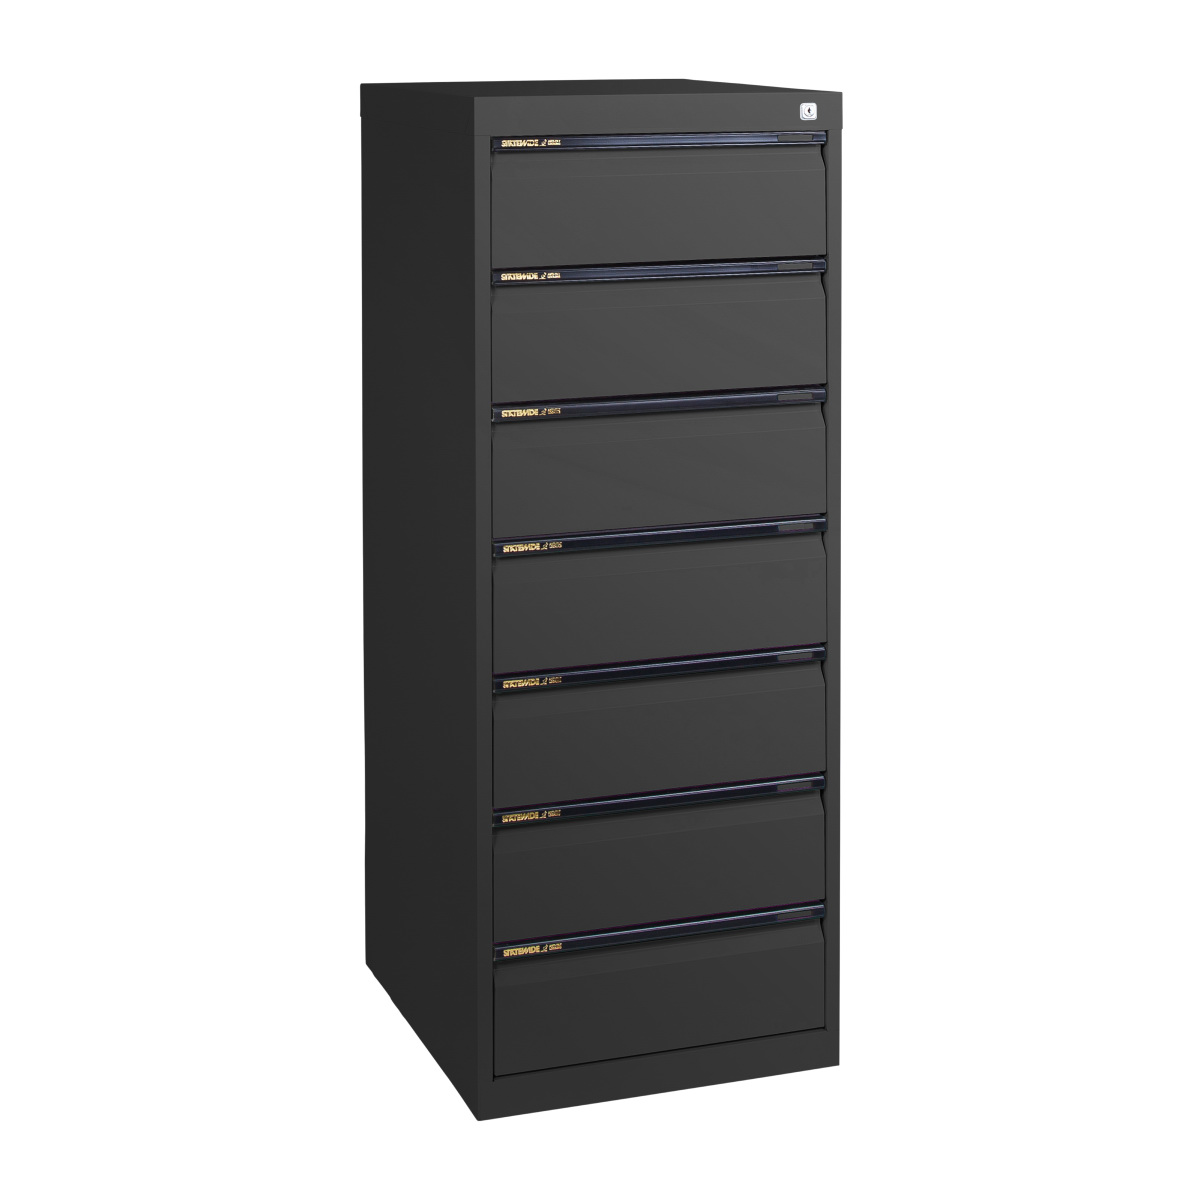 Cd Cabinet To Suit Standard Cd Cases Statewide Office Furniture